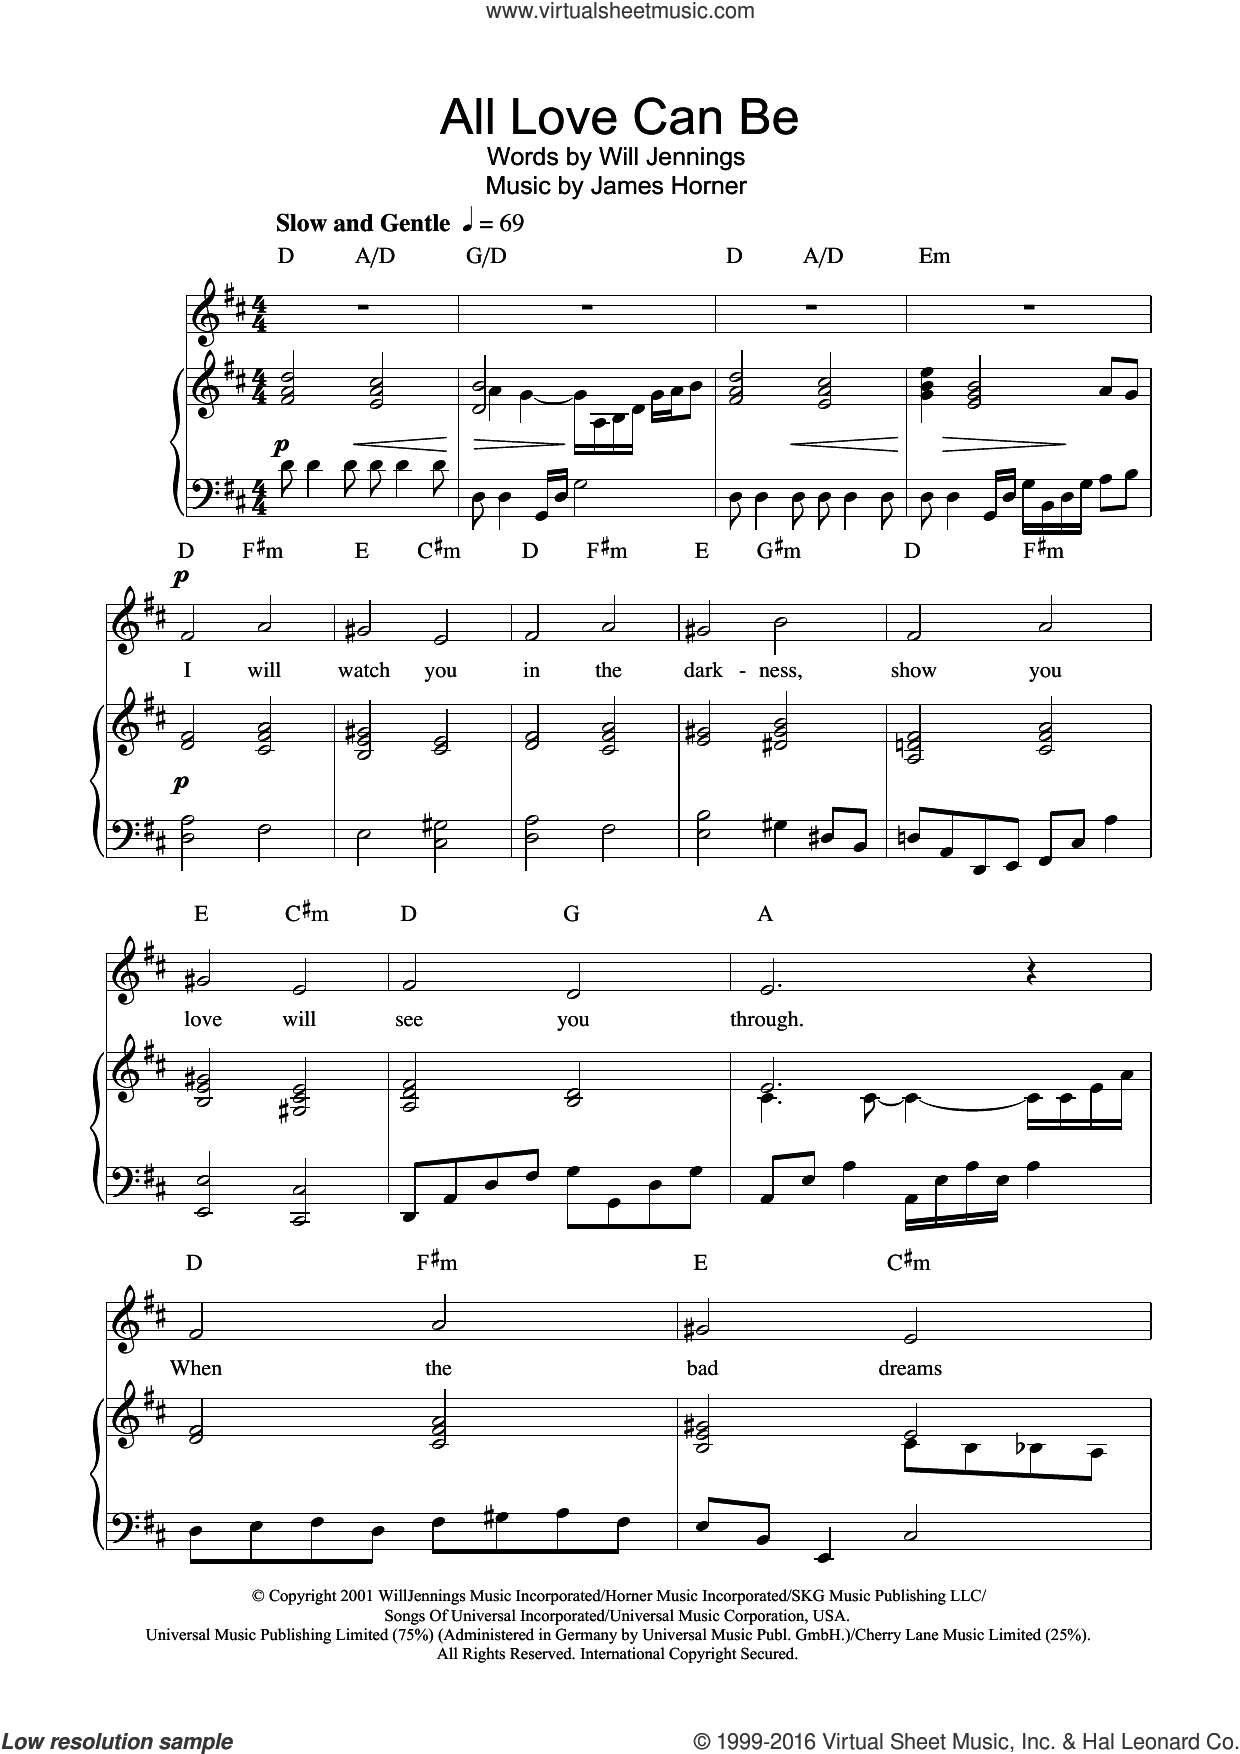 All Love Can Be (from A Beautiful Mind) sheet music for voice, piano or guitar by Charlotte Church, James Horner and Will Jennings, intermediate skill level